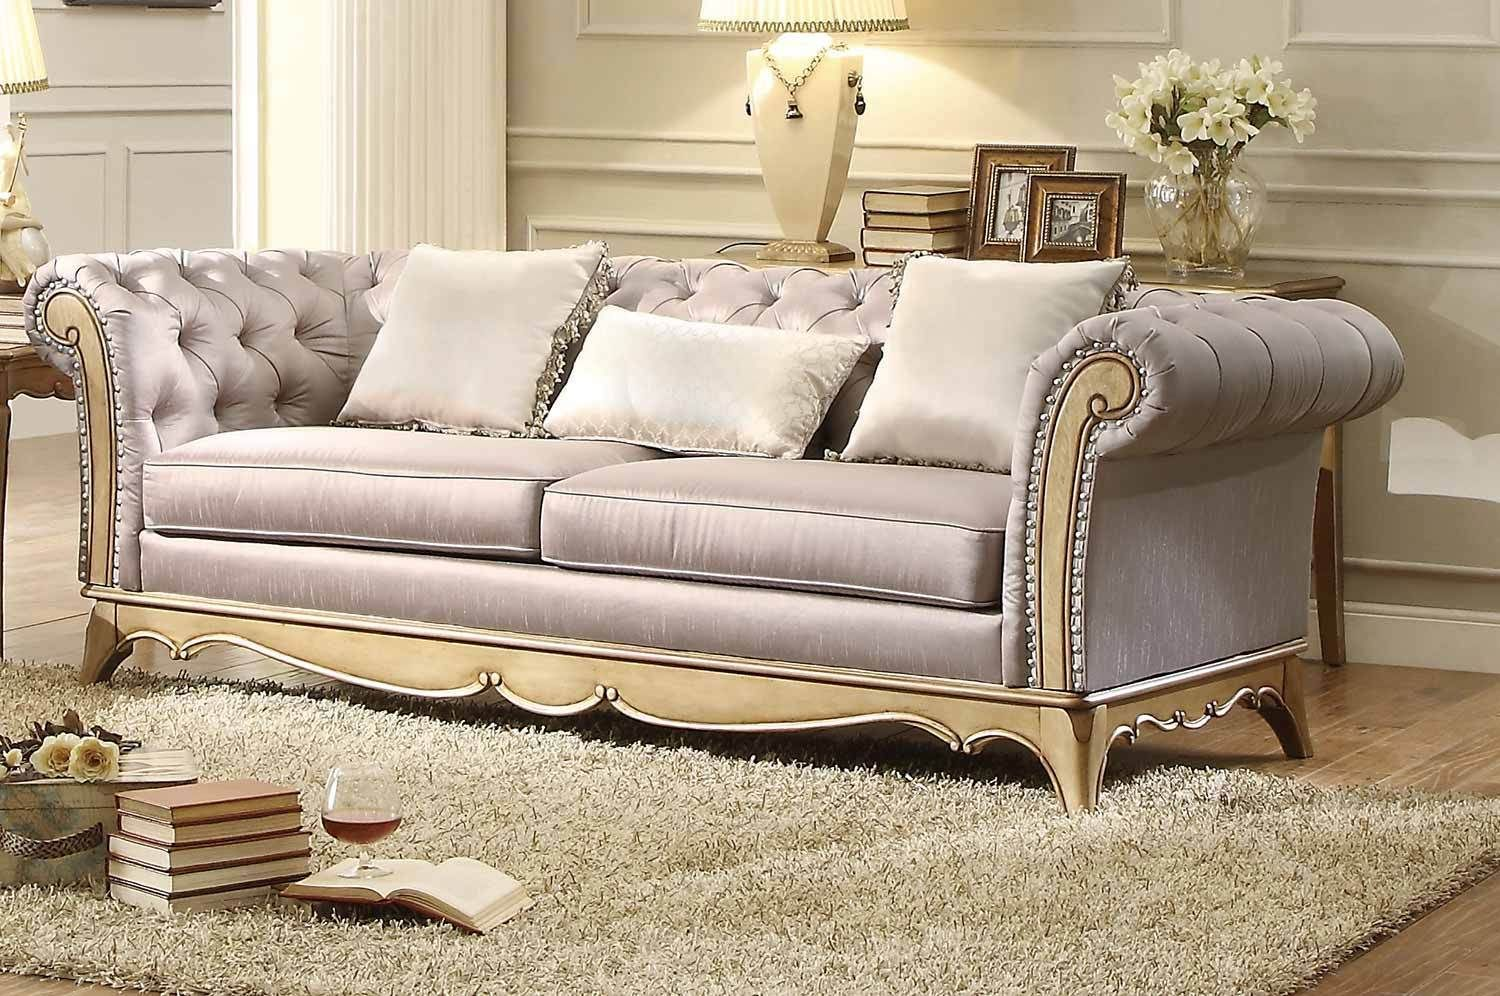 Sofa On Sale Ebay Stunning Faux Silk Upholstered Traditional Tufted Sofa Livingroom